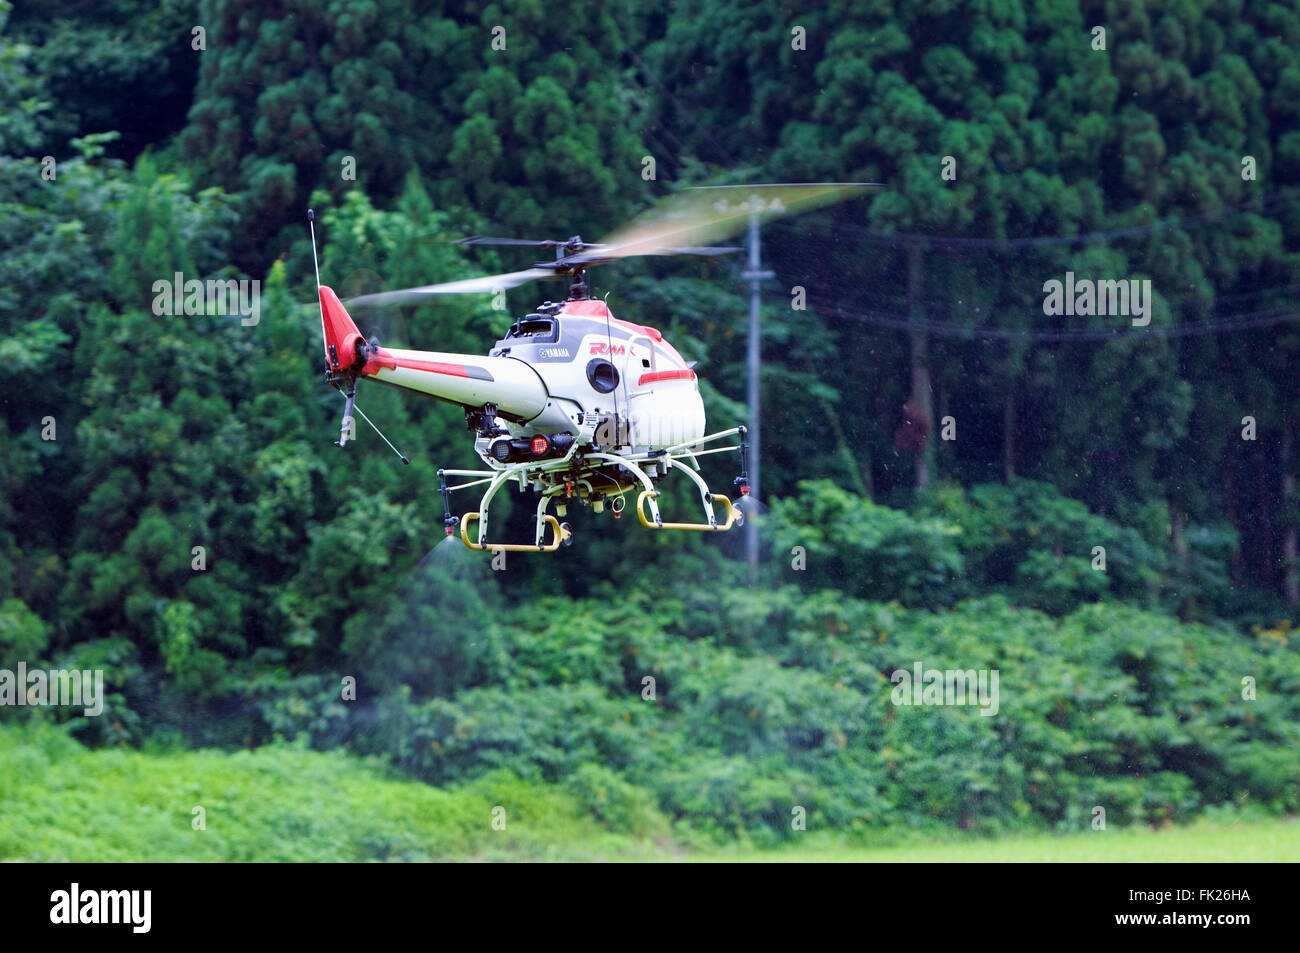 A Yamaha RMax crop spraying drone in action Stock Photo